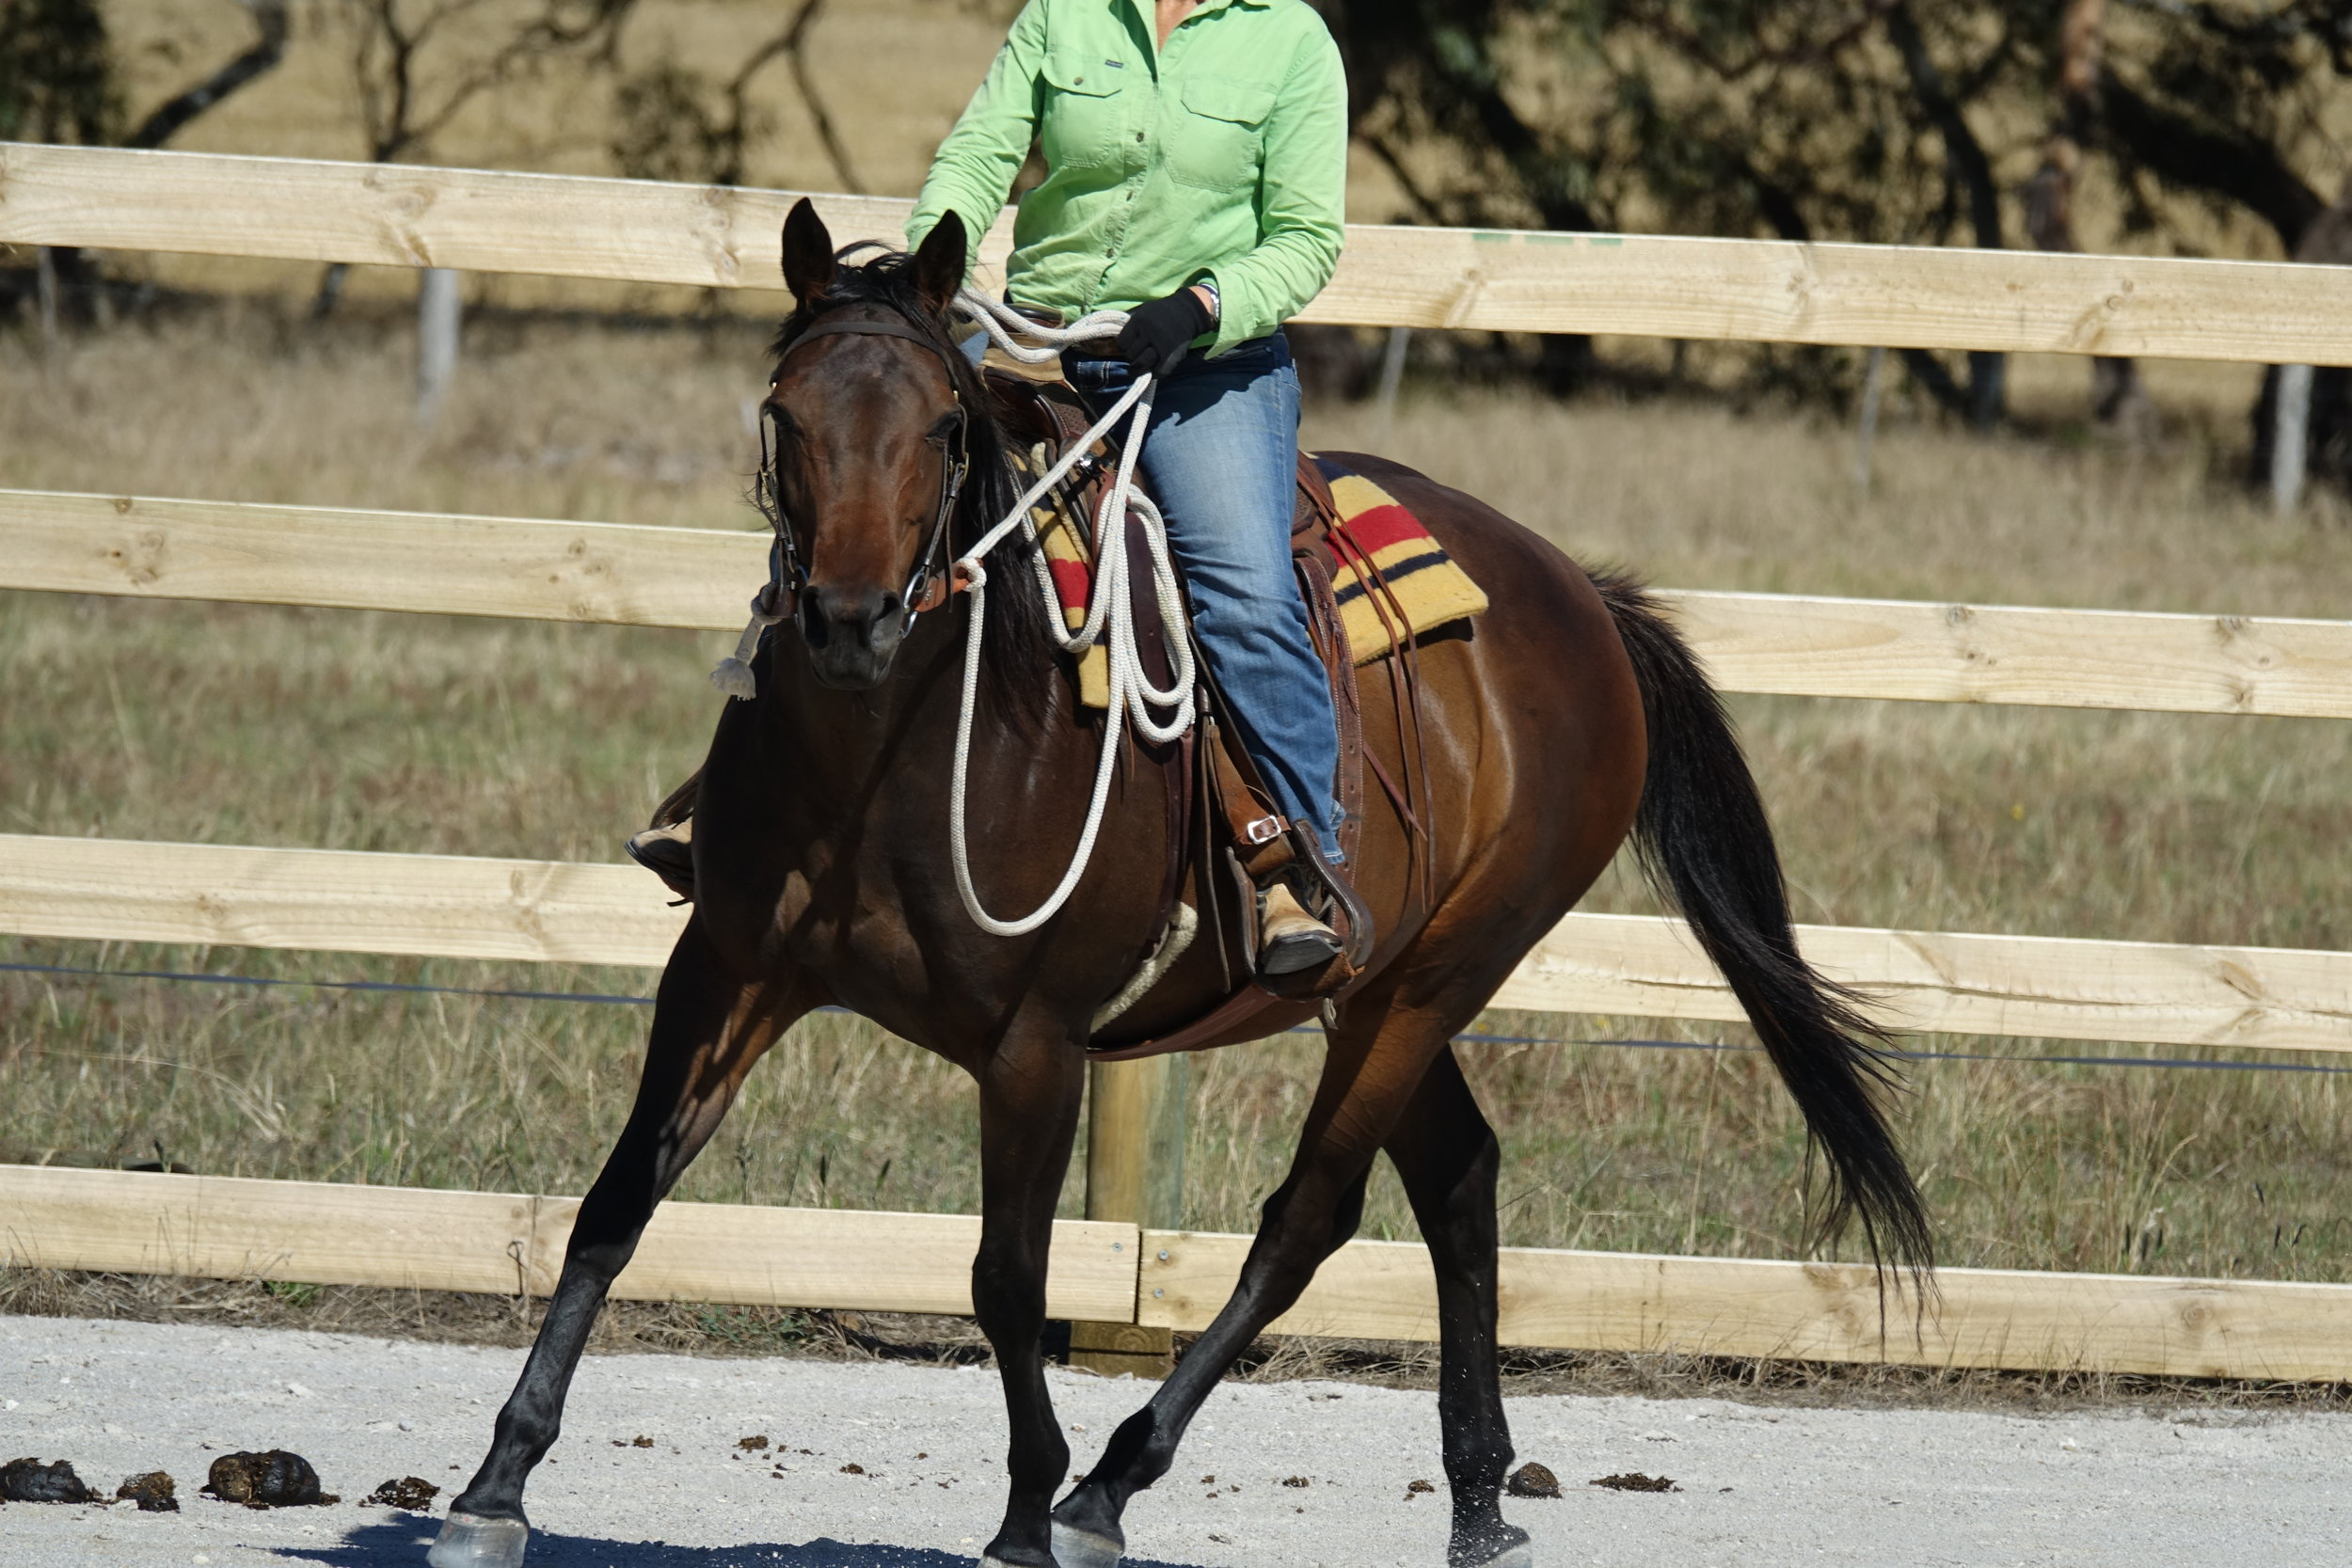 Ellie - SOLD - Beautiful natured 6 year old 15.2 Anglo Arab mare. Ellie would suit an intermediate rider. She was started late last year, turned out and has now just been bought back into work. She has an easy going, very cruisy temperament and would make an excellent pony club, ARC or trail riding mount. She is good to float, have feet and teeth done and as you can see by her belly is a good doer. She is up for sale as I have way too many horses to keep in work and she would just waste in the paddock. Ellie deserves a home that can give her more education and attention. She is priced at $3500. If you would like to meet Ellie please contact Sally on 0408 178 072. She is located at Buckley near Geelong.